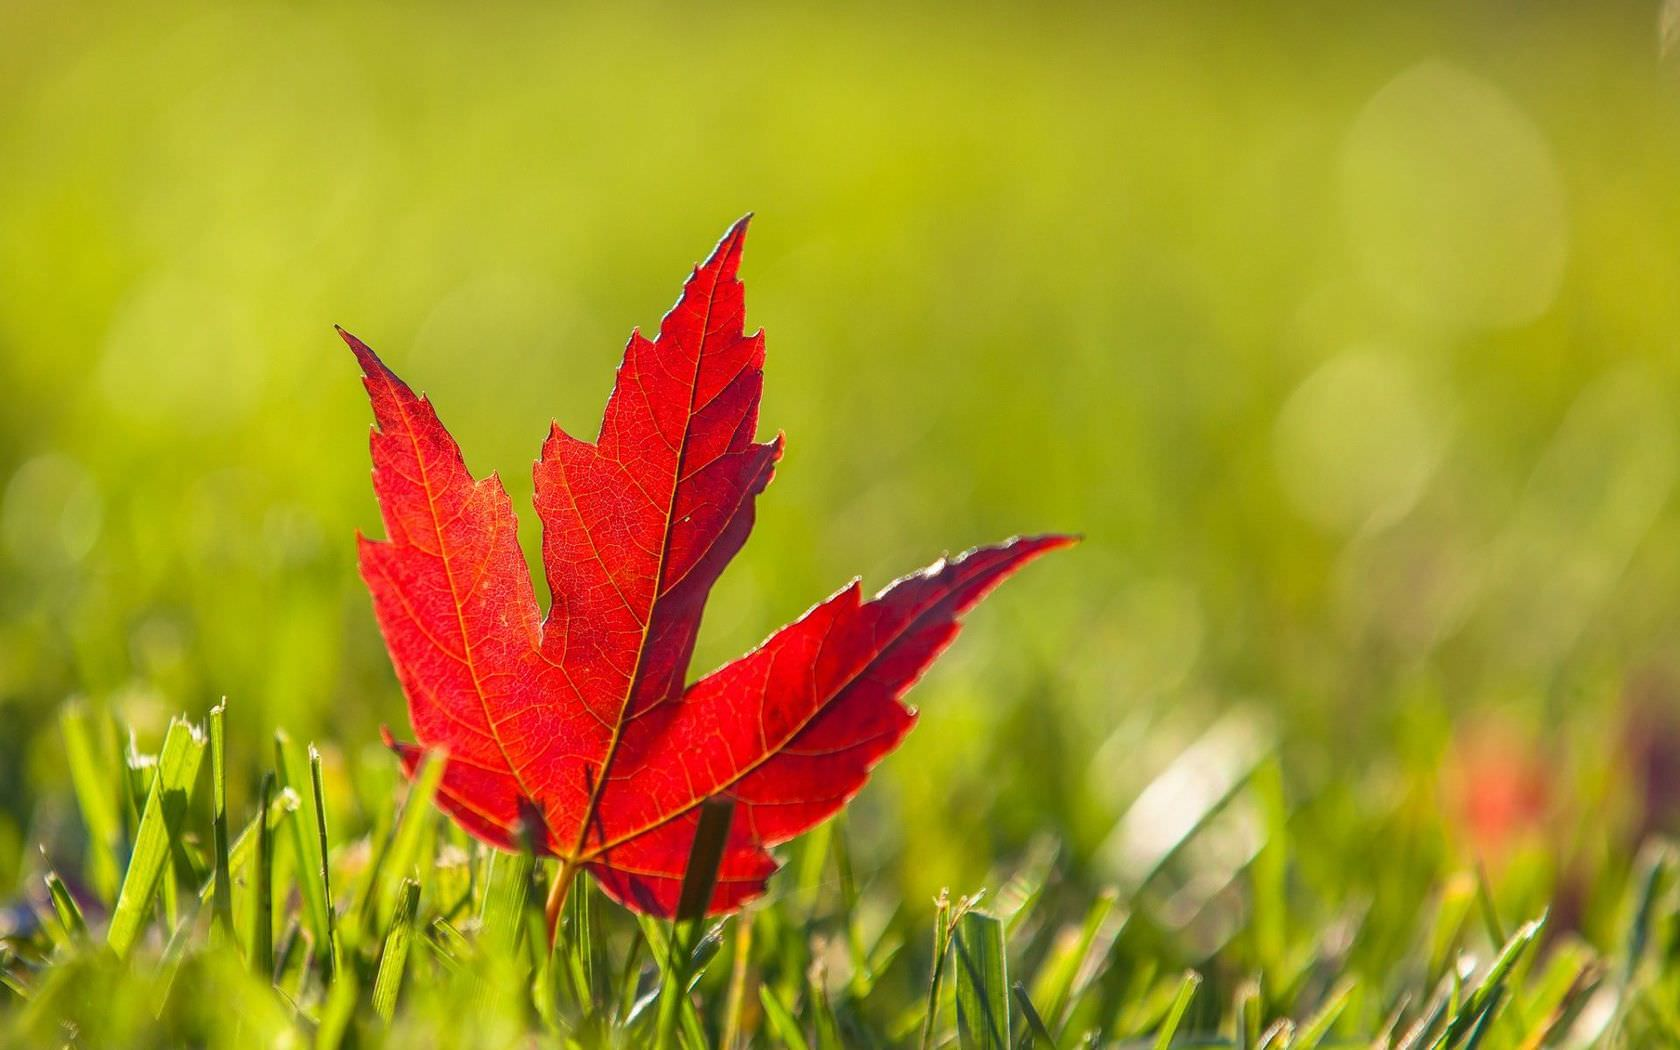 Free 21 Leaf Backgrounds In Psd